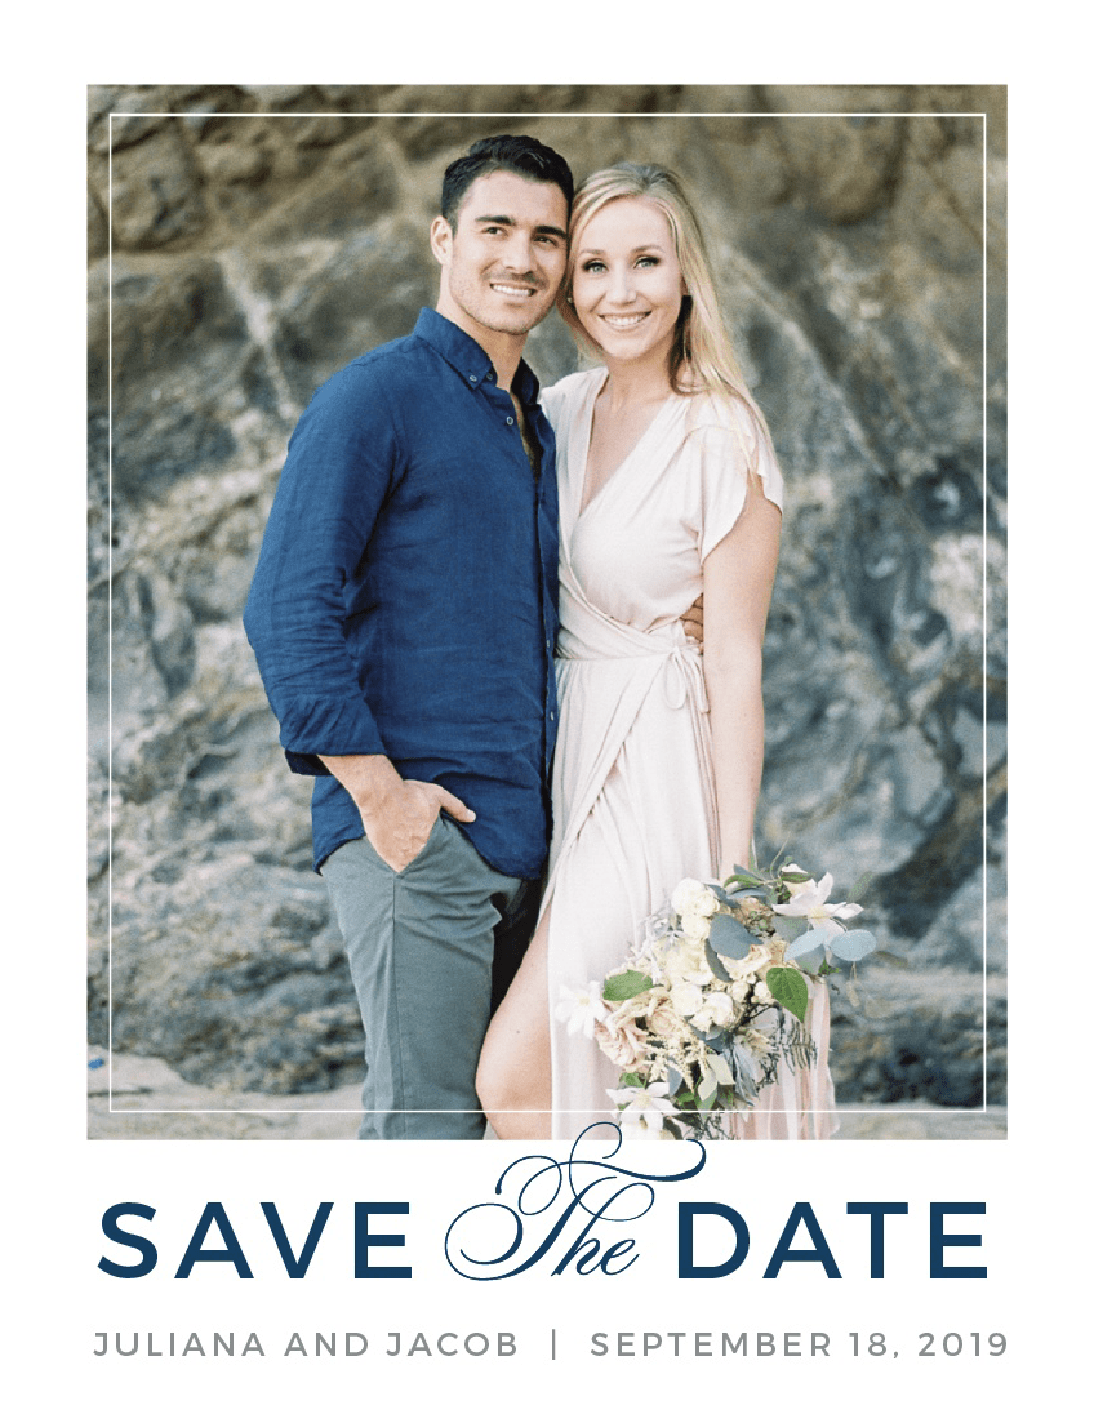 Save The Date Image